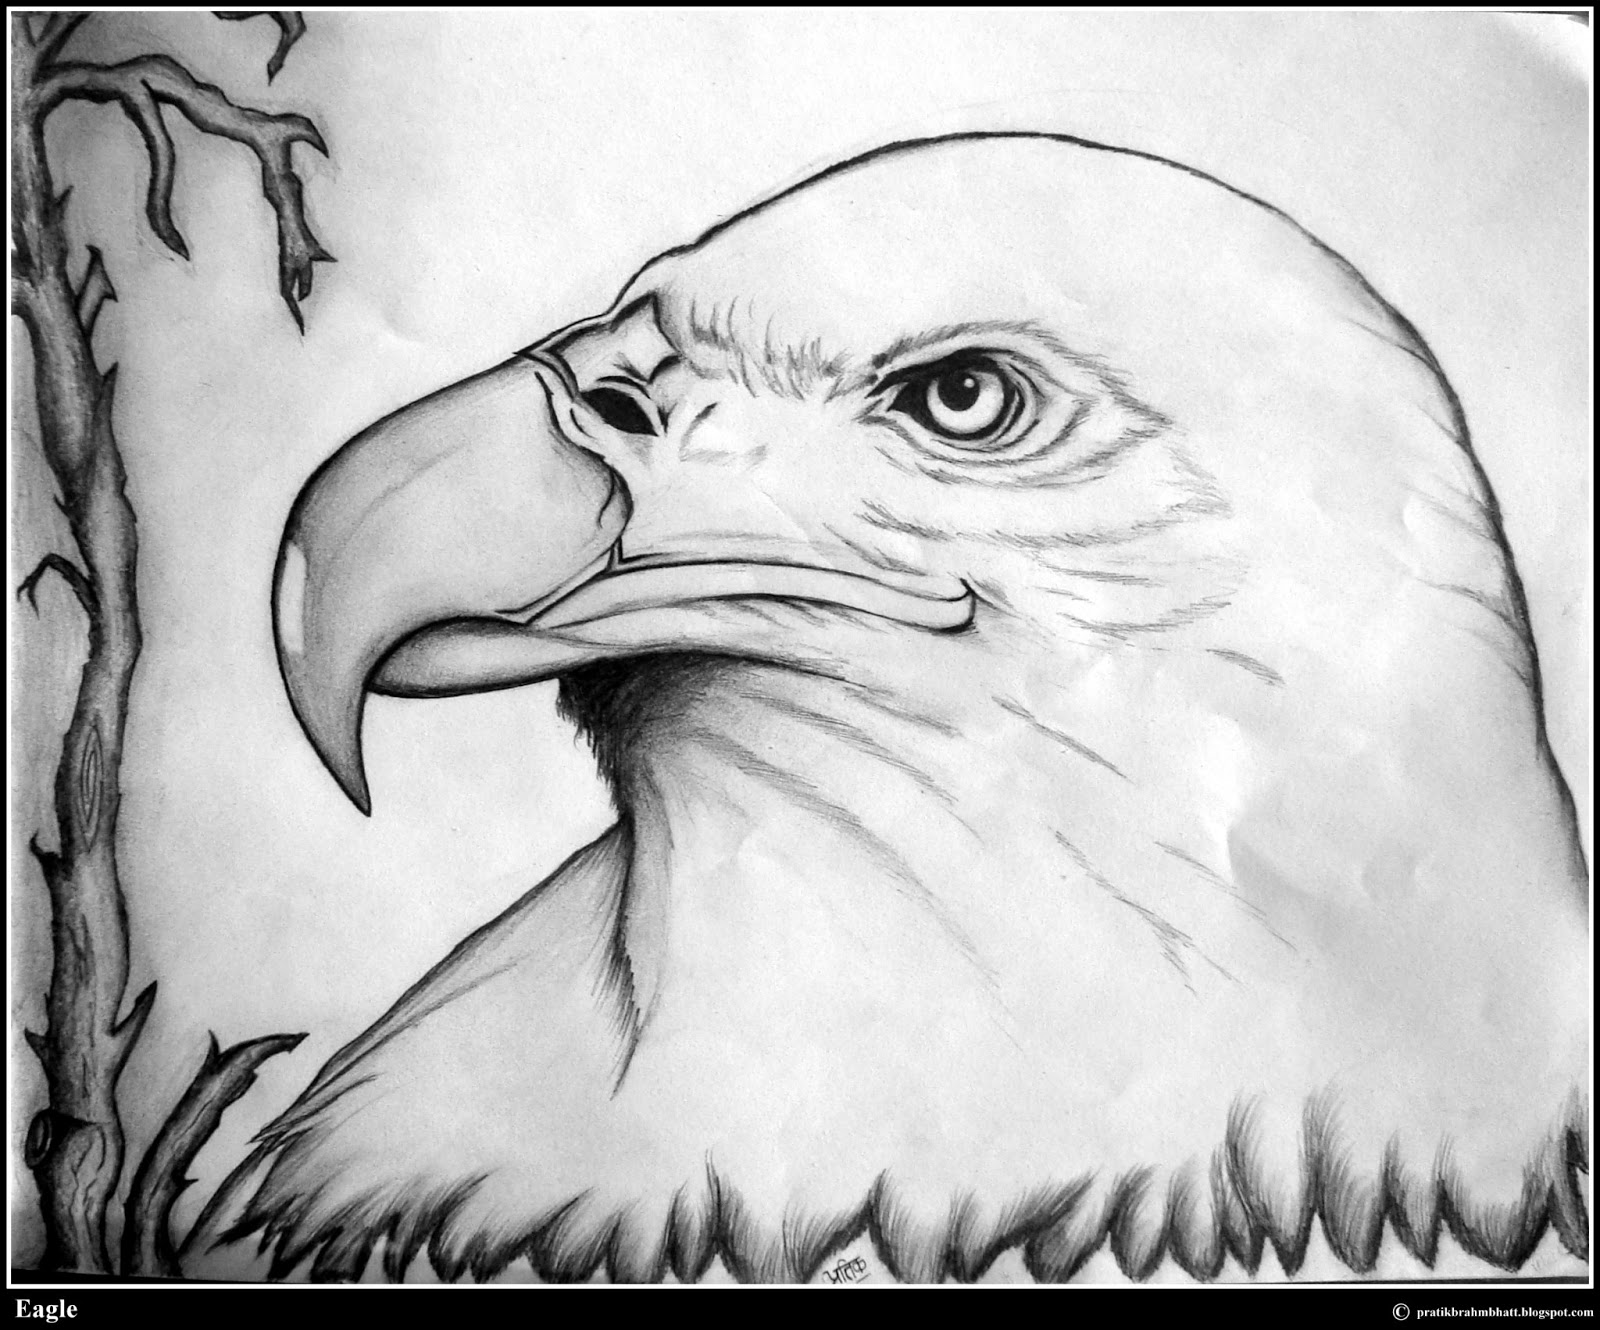 Youve arrived at pratik brahmbhatts eagle pencil drawing page i hope you like it enjoy click on the drawing for the full size view